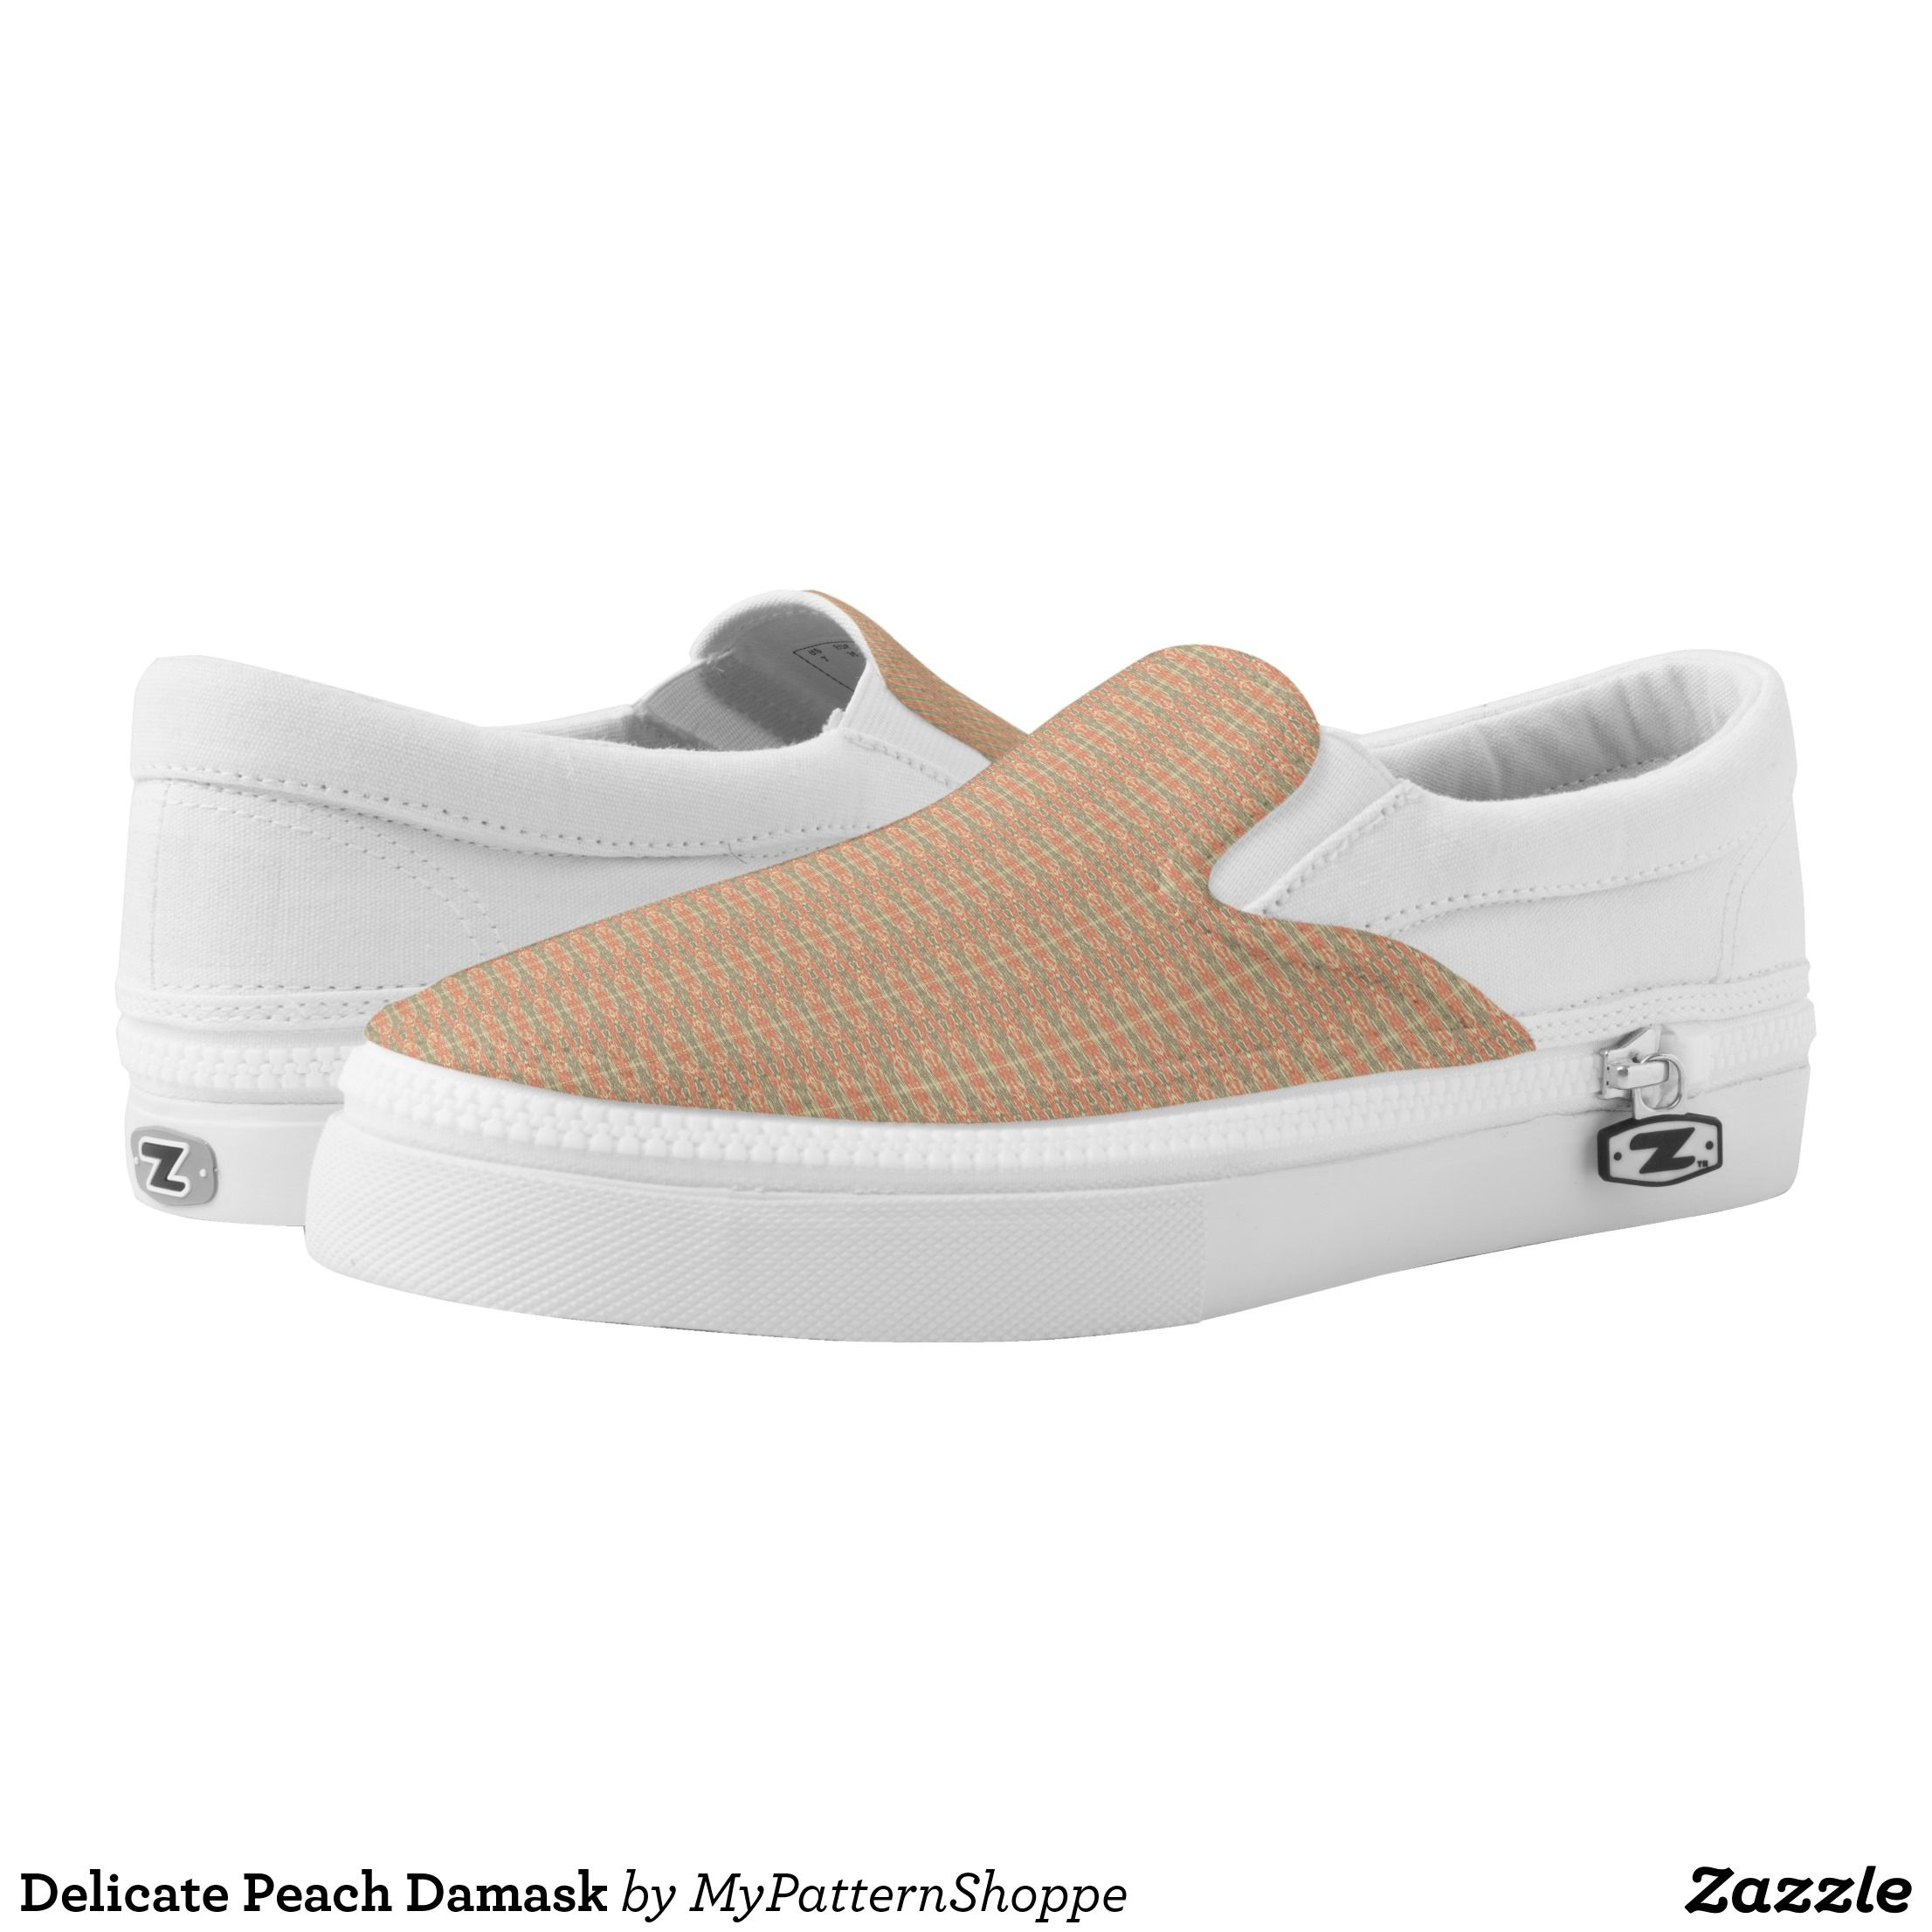 73aeaba9816b Delicate Peach Damask Slip-On Sneakers - Canvas-Top Rubber-Sole Athletic  Shoes By Talented Fashion And Graphic Designers -  shoes  sneakers   footwear ...